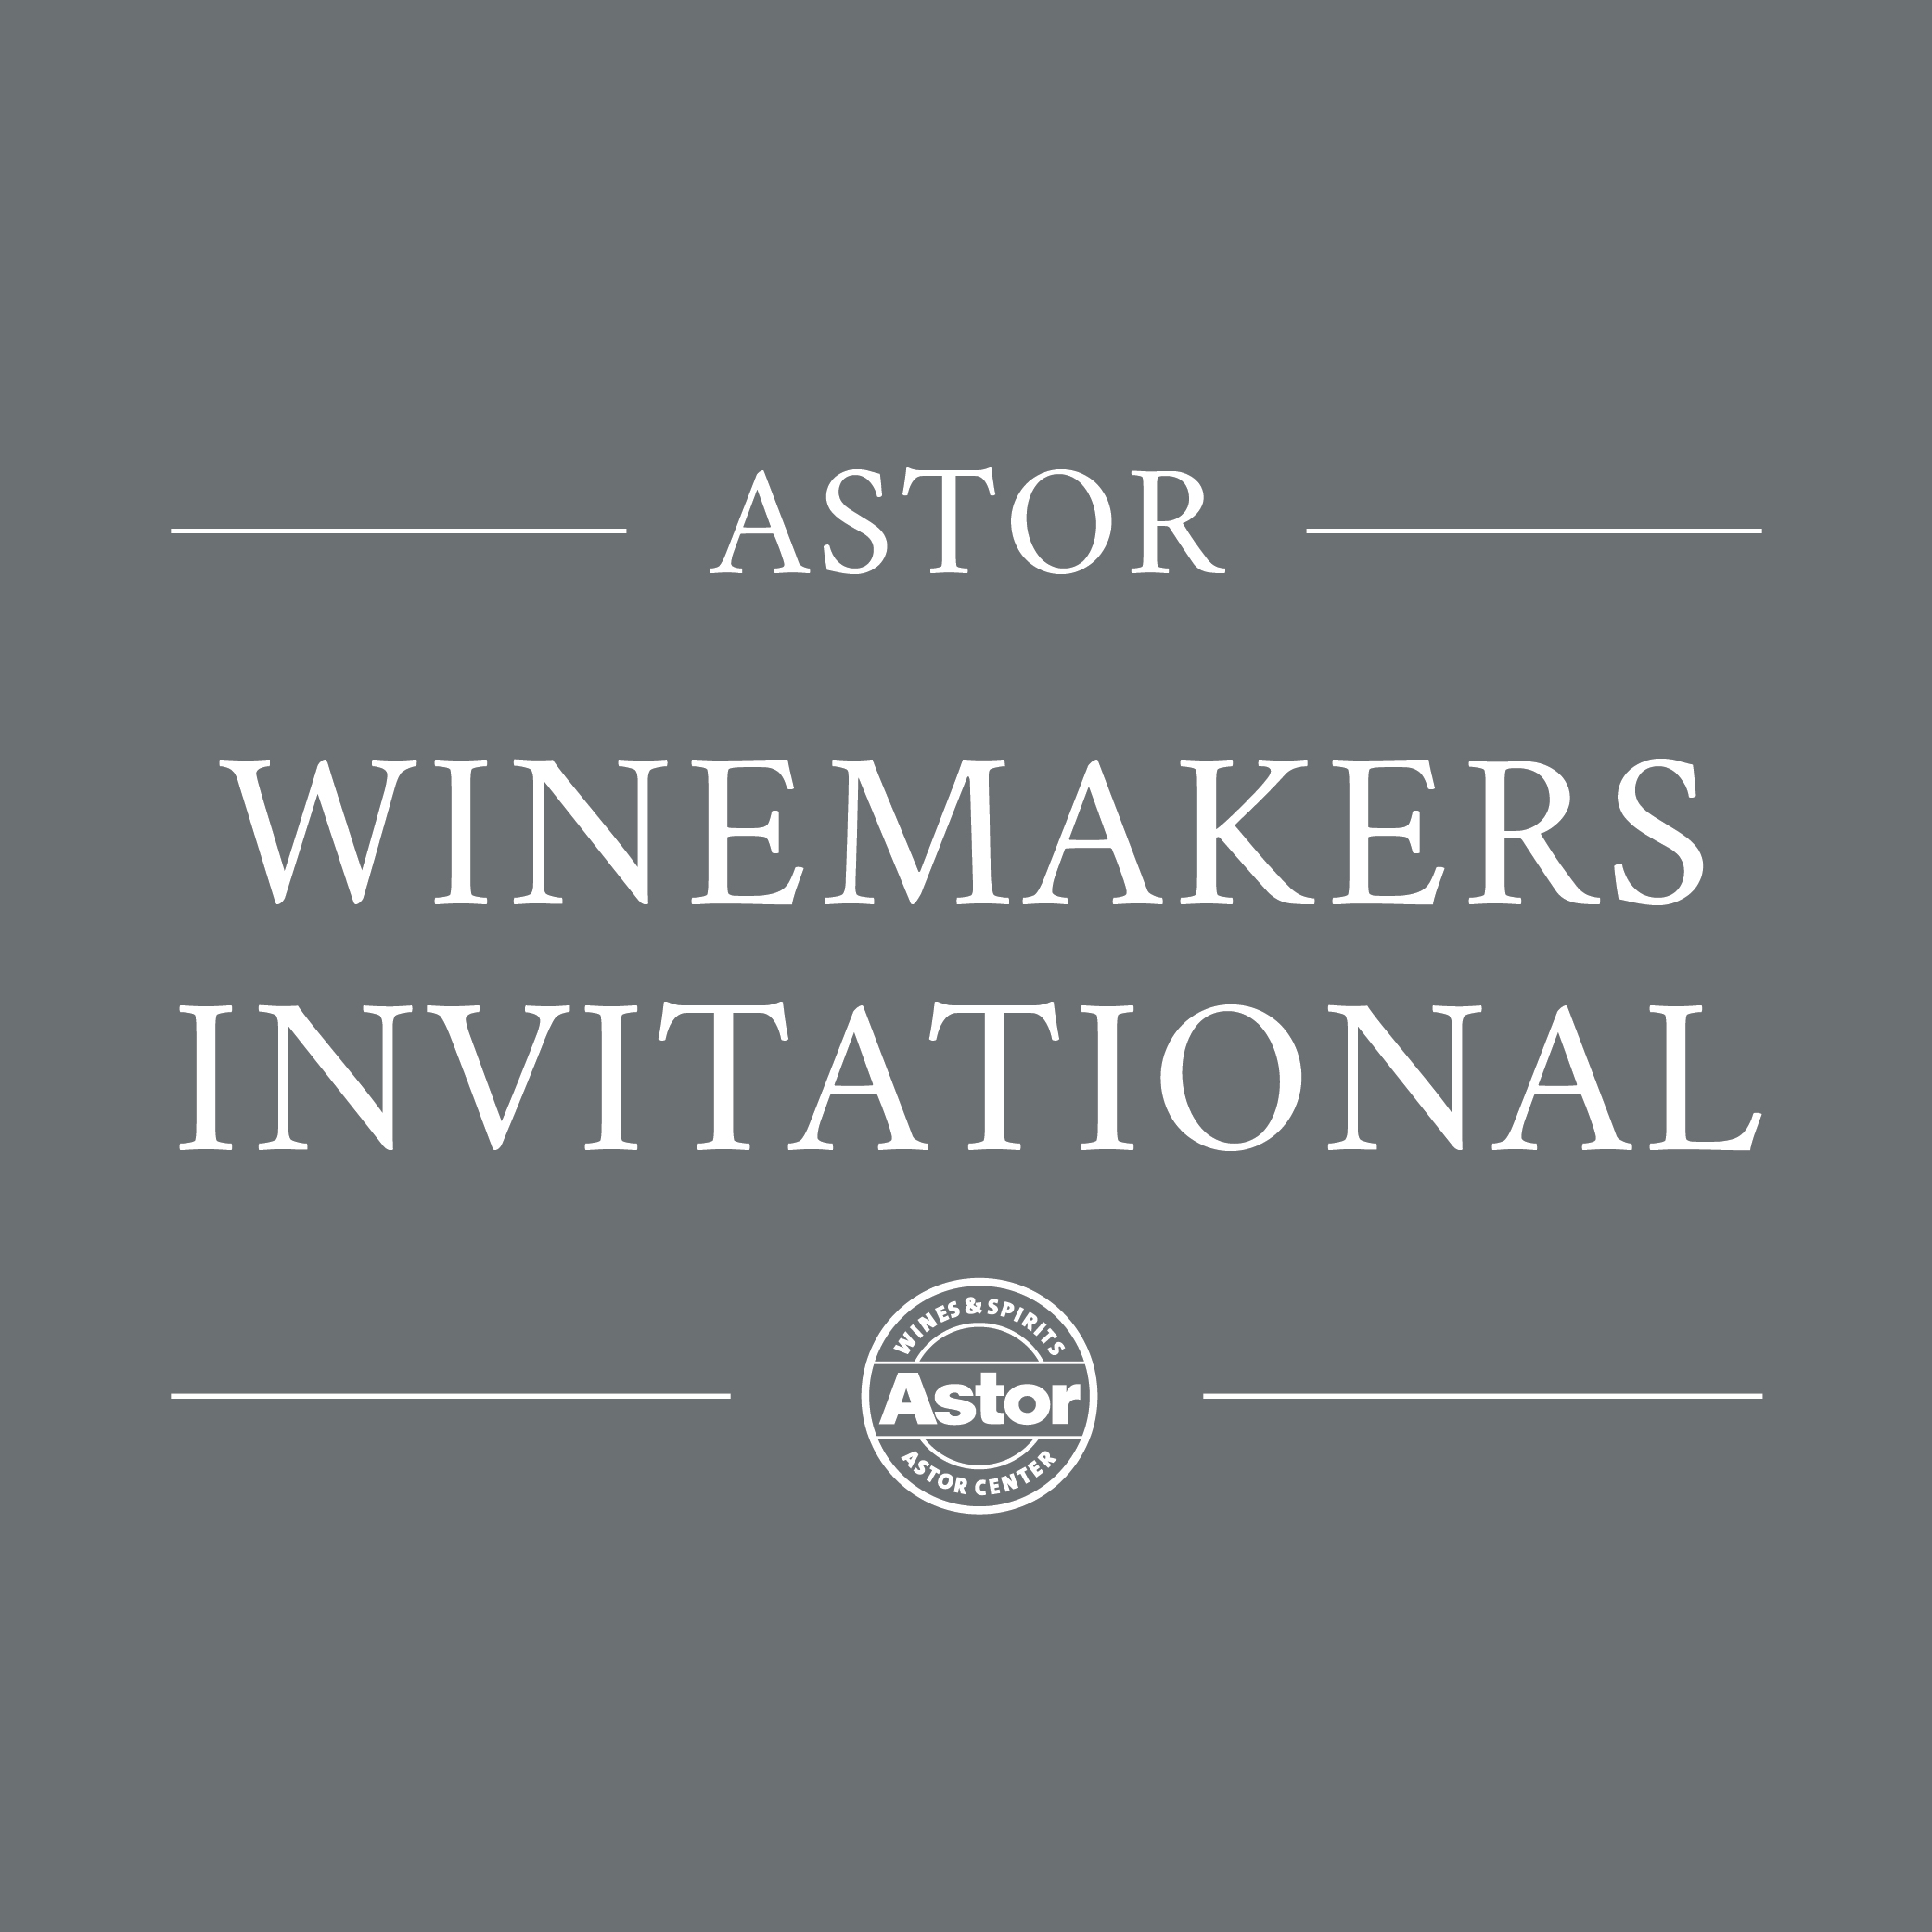 2015-04-18-Astor-Winemakers-Invitational-logo-05.jpg